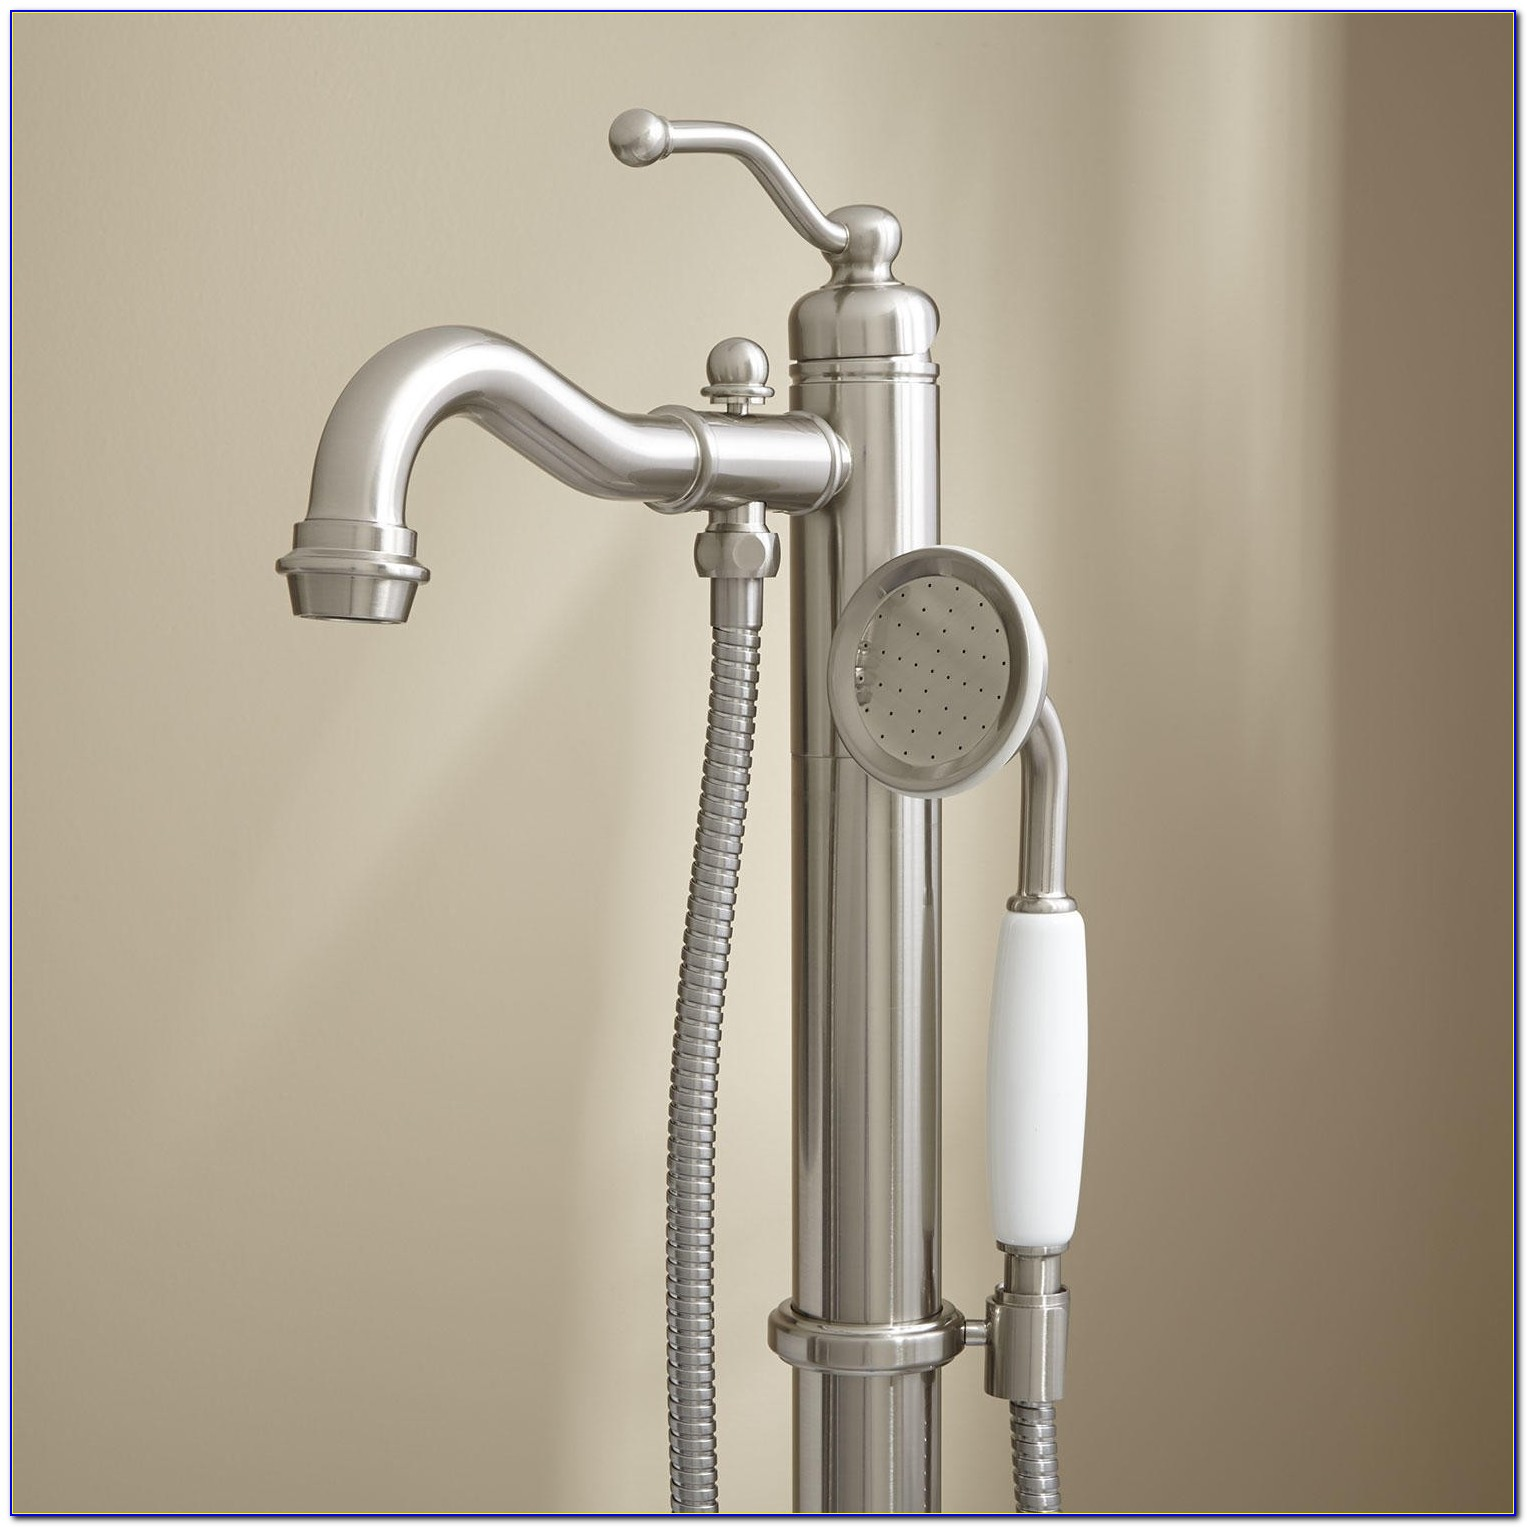 Bathtub Faucet With Handheld Shower Diverter Bathtub Faucet With Handheld Shower Diverter Leta Freestanding Tub Faucet With Hand Shower Bathroom 1500 X 1500